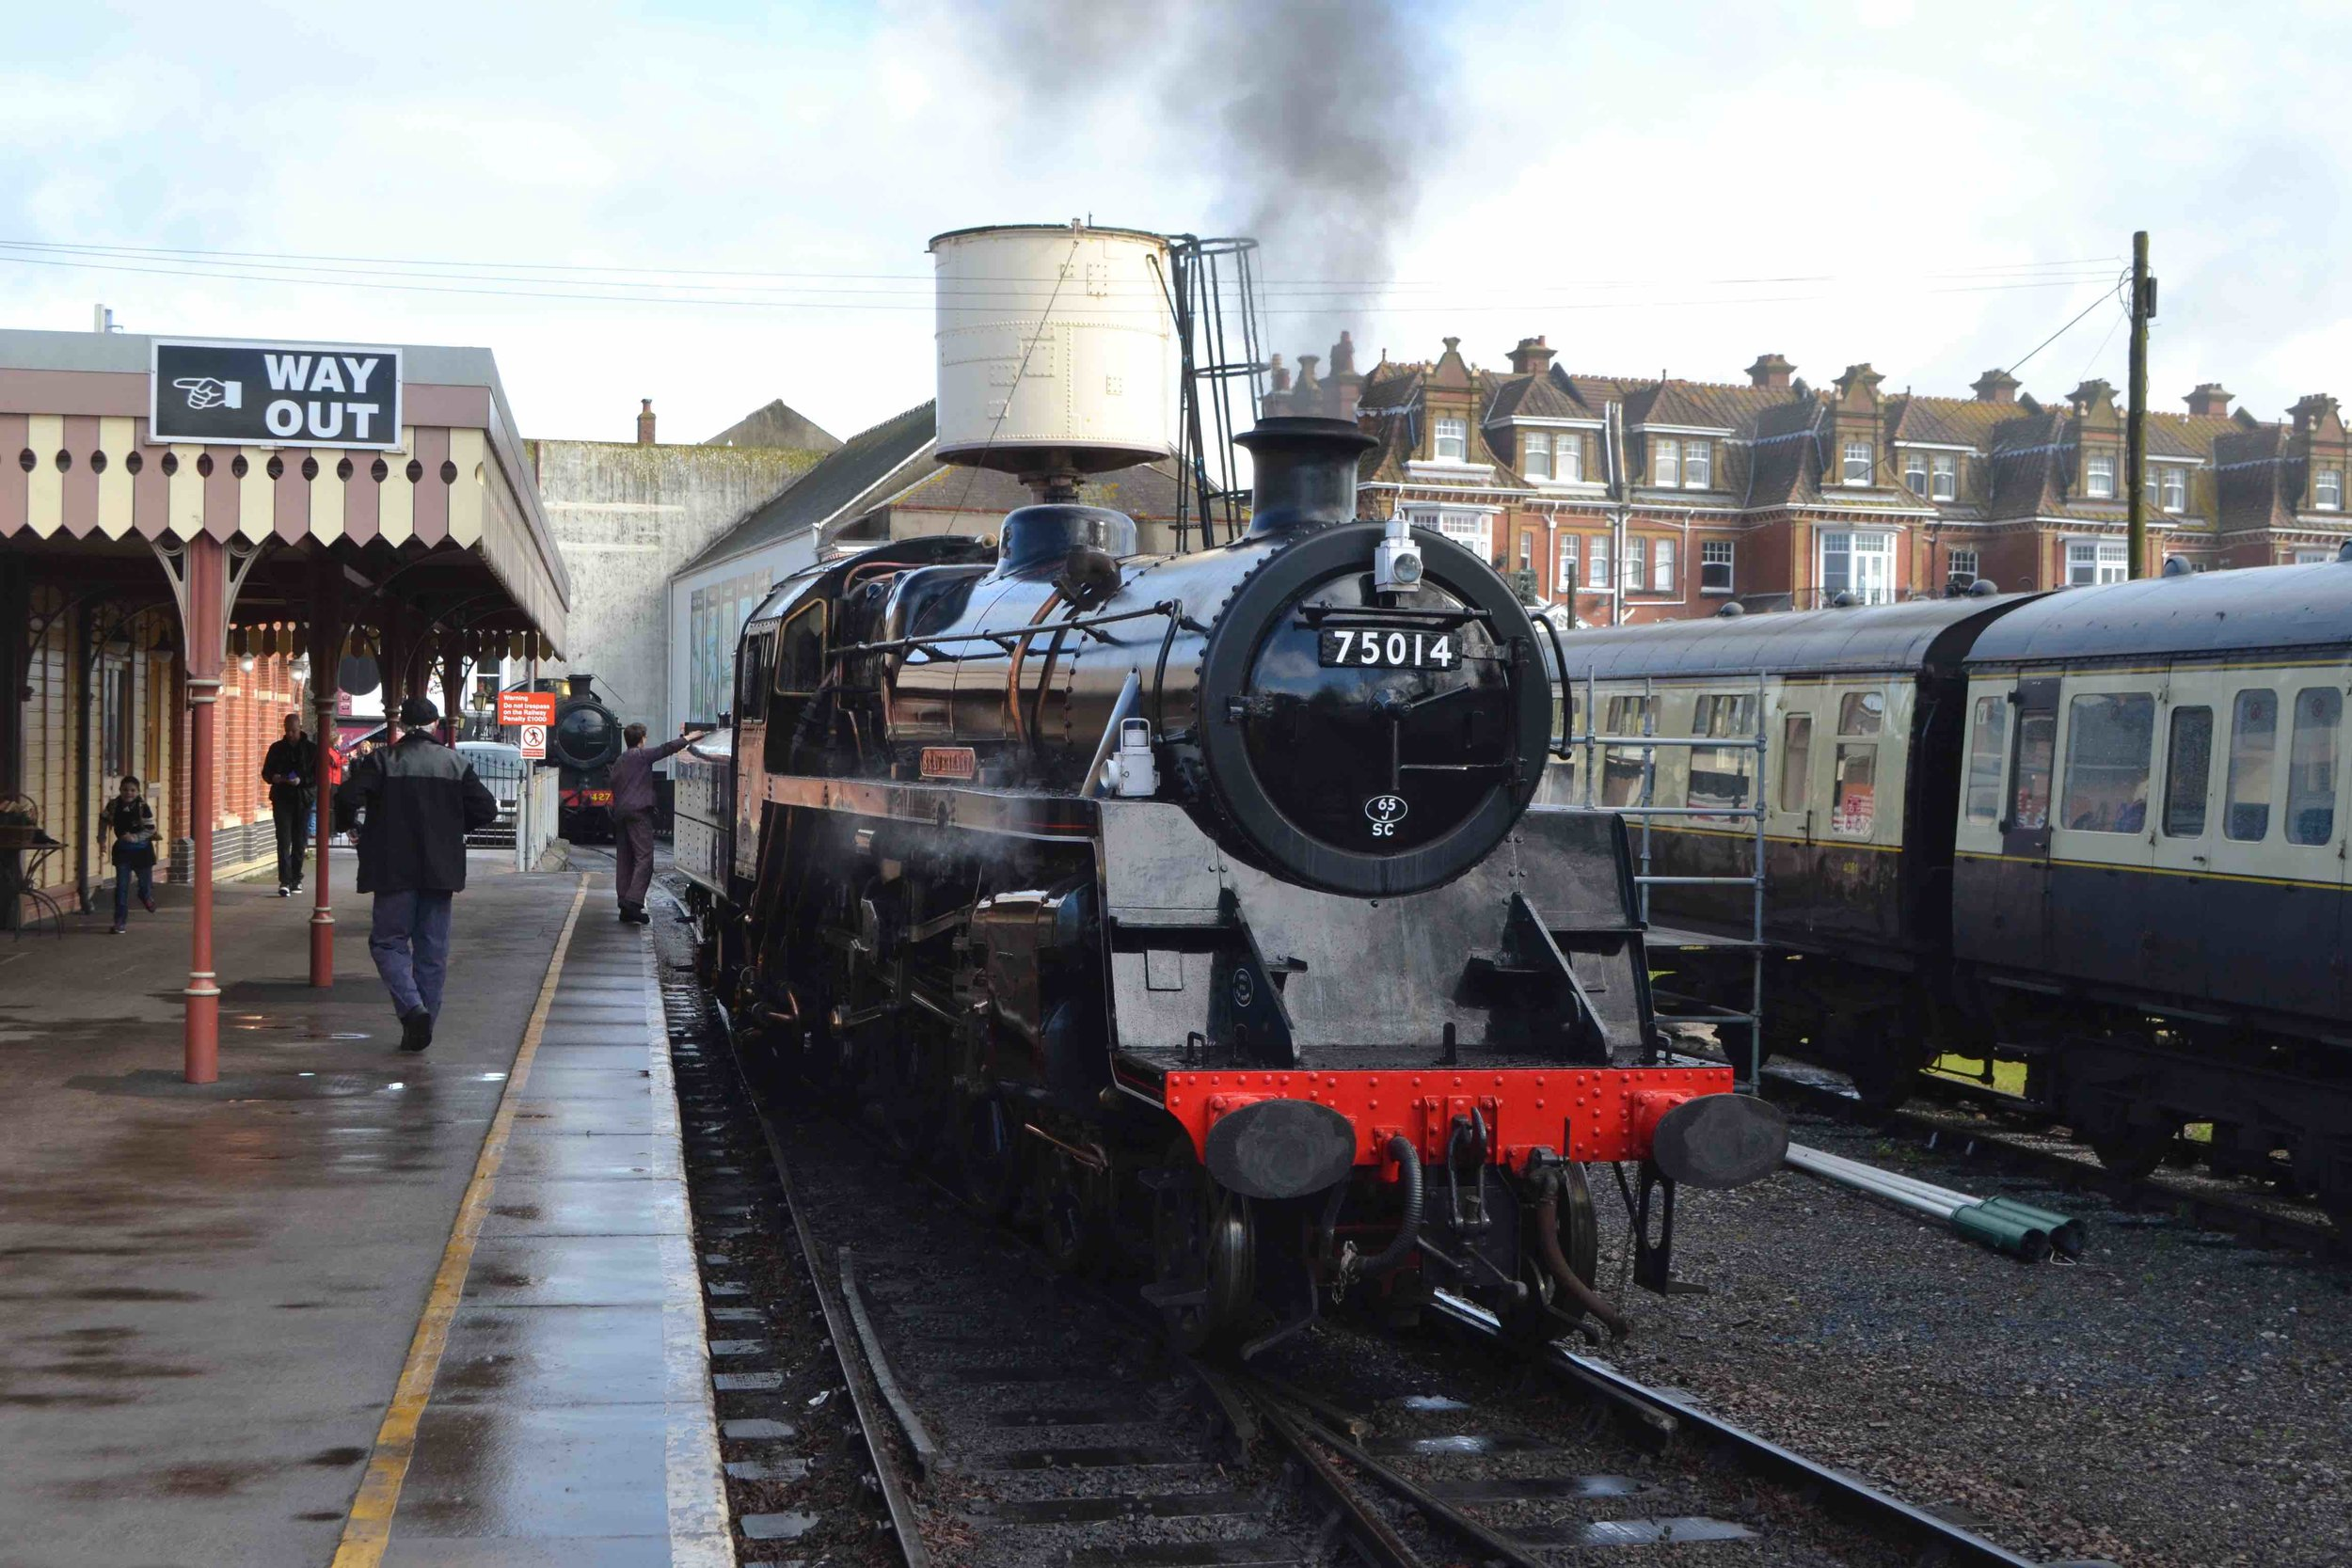 BR Standard '4MT' No. 75014, star of the West Somerset Railway's forthcoming 'Autumn Steam Gala' on October 5-8, leaves Paignton during its official re-launch into traffic on March 22. TOBY JENNINGS/SR